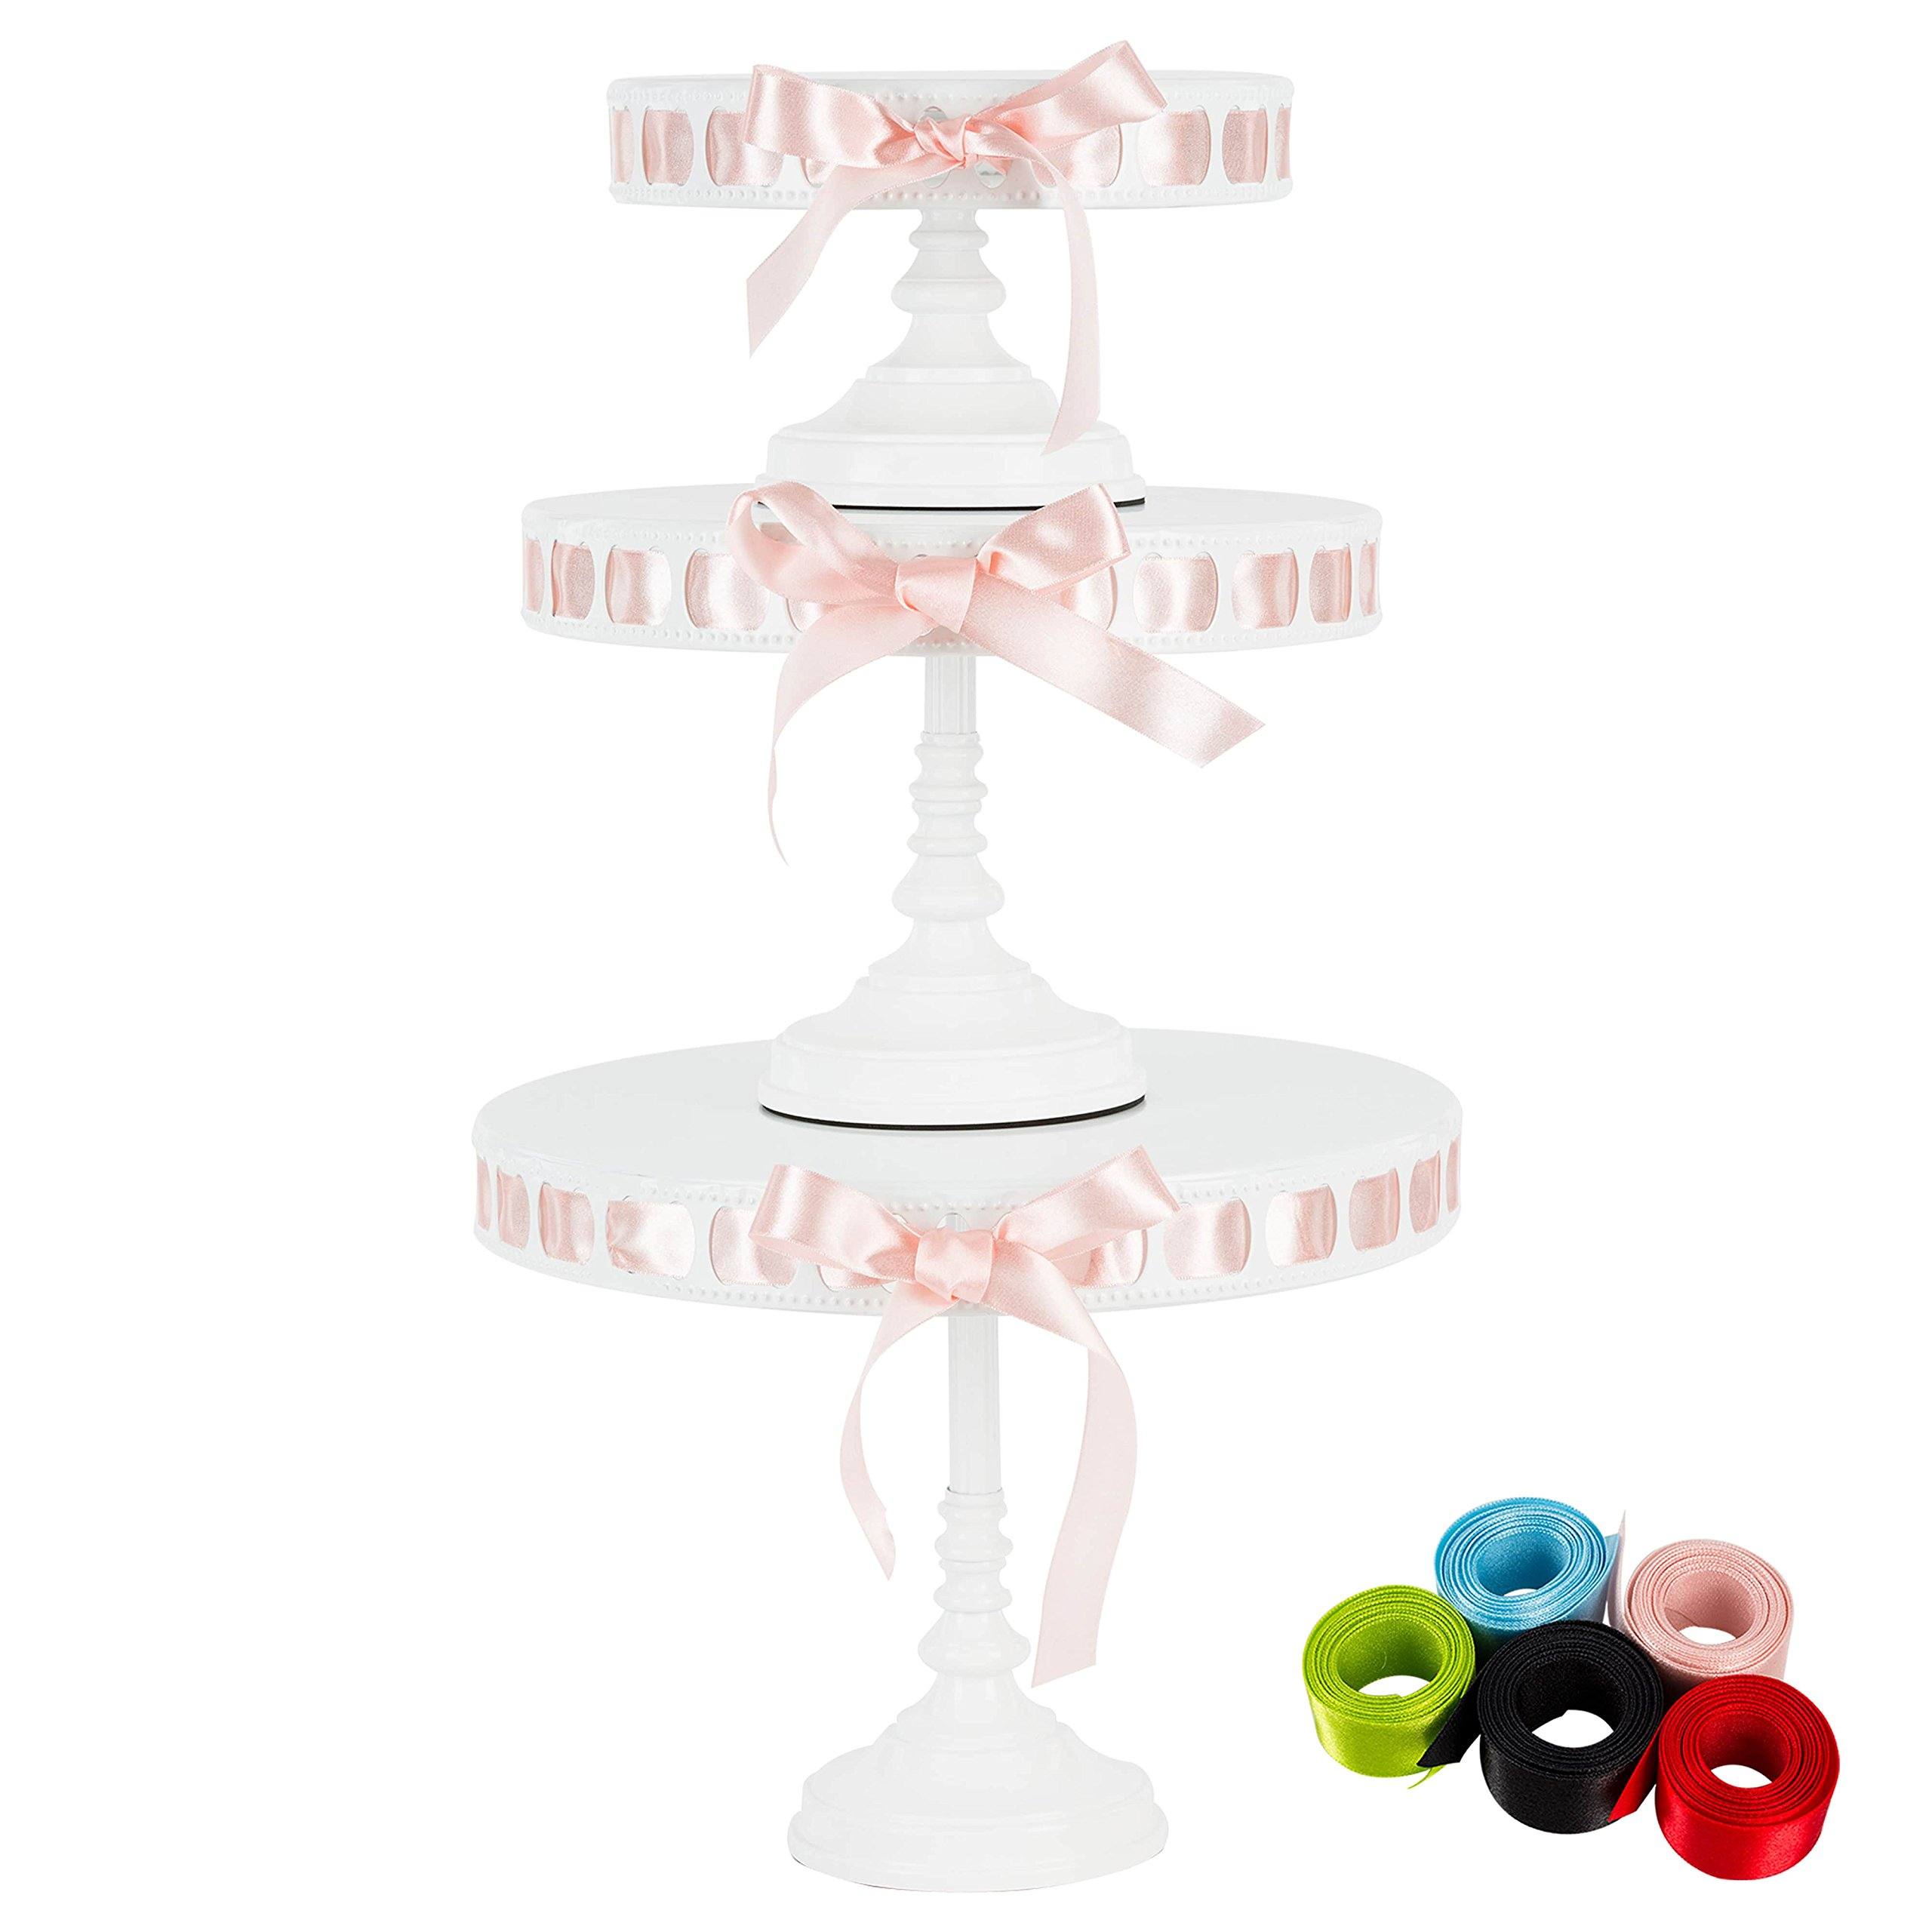 Lily 3-Piece White Metal Ribbon Cake Stand Set, Round DIY Display Pedestal 15 Interchangeable Satin Ribbons Included